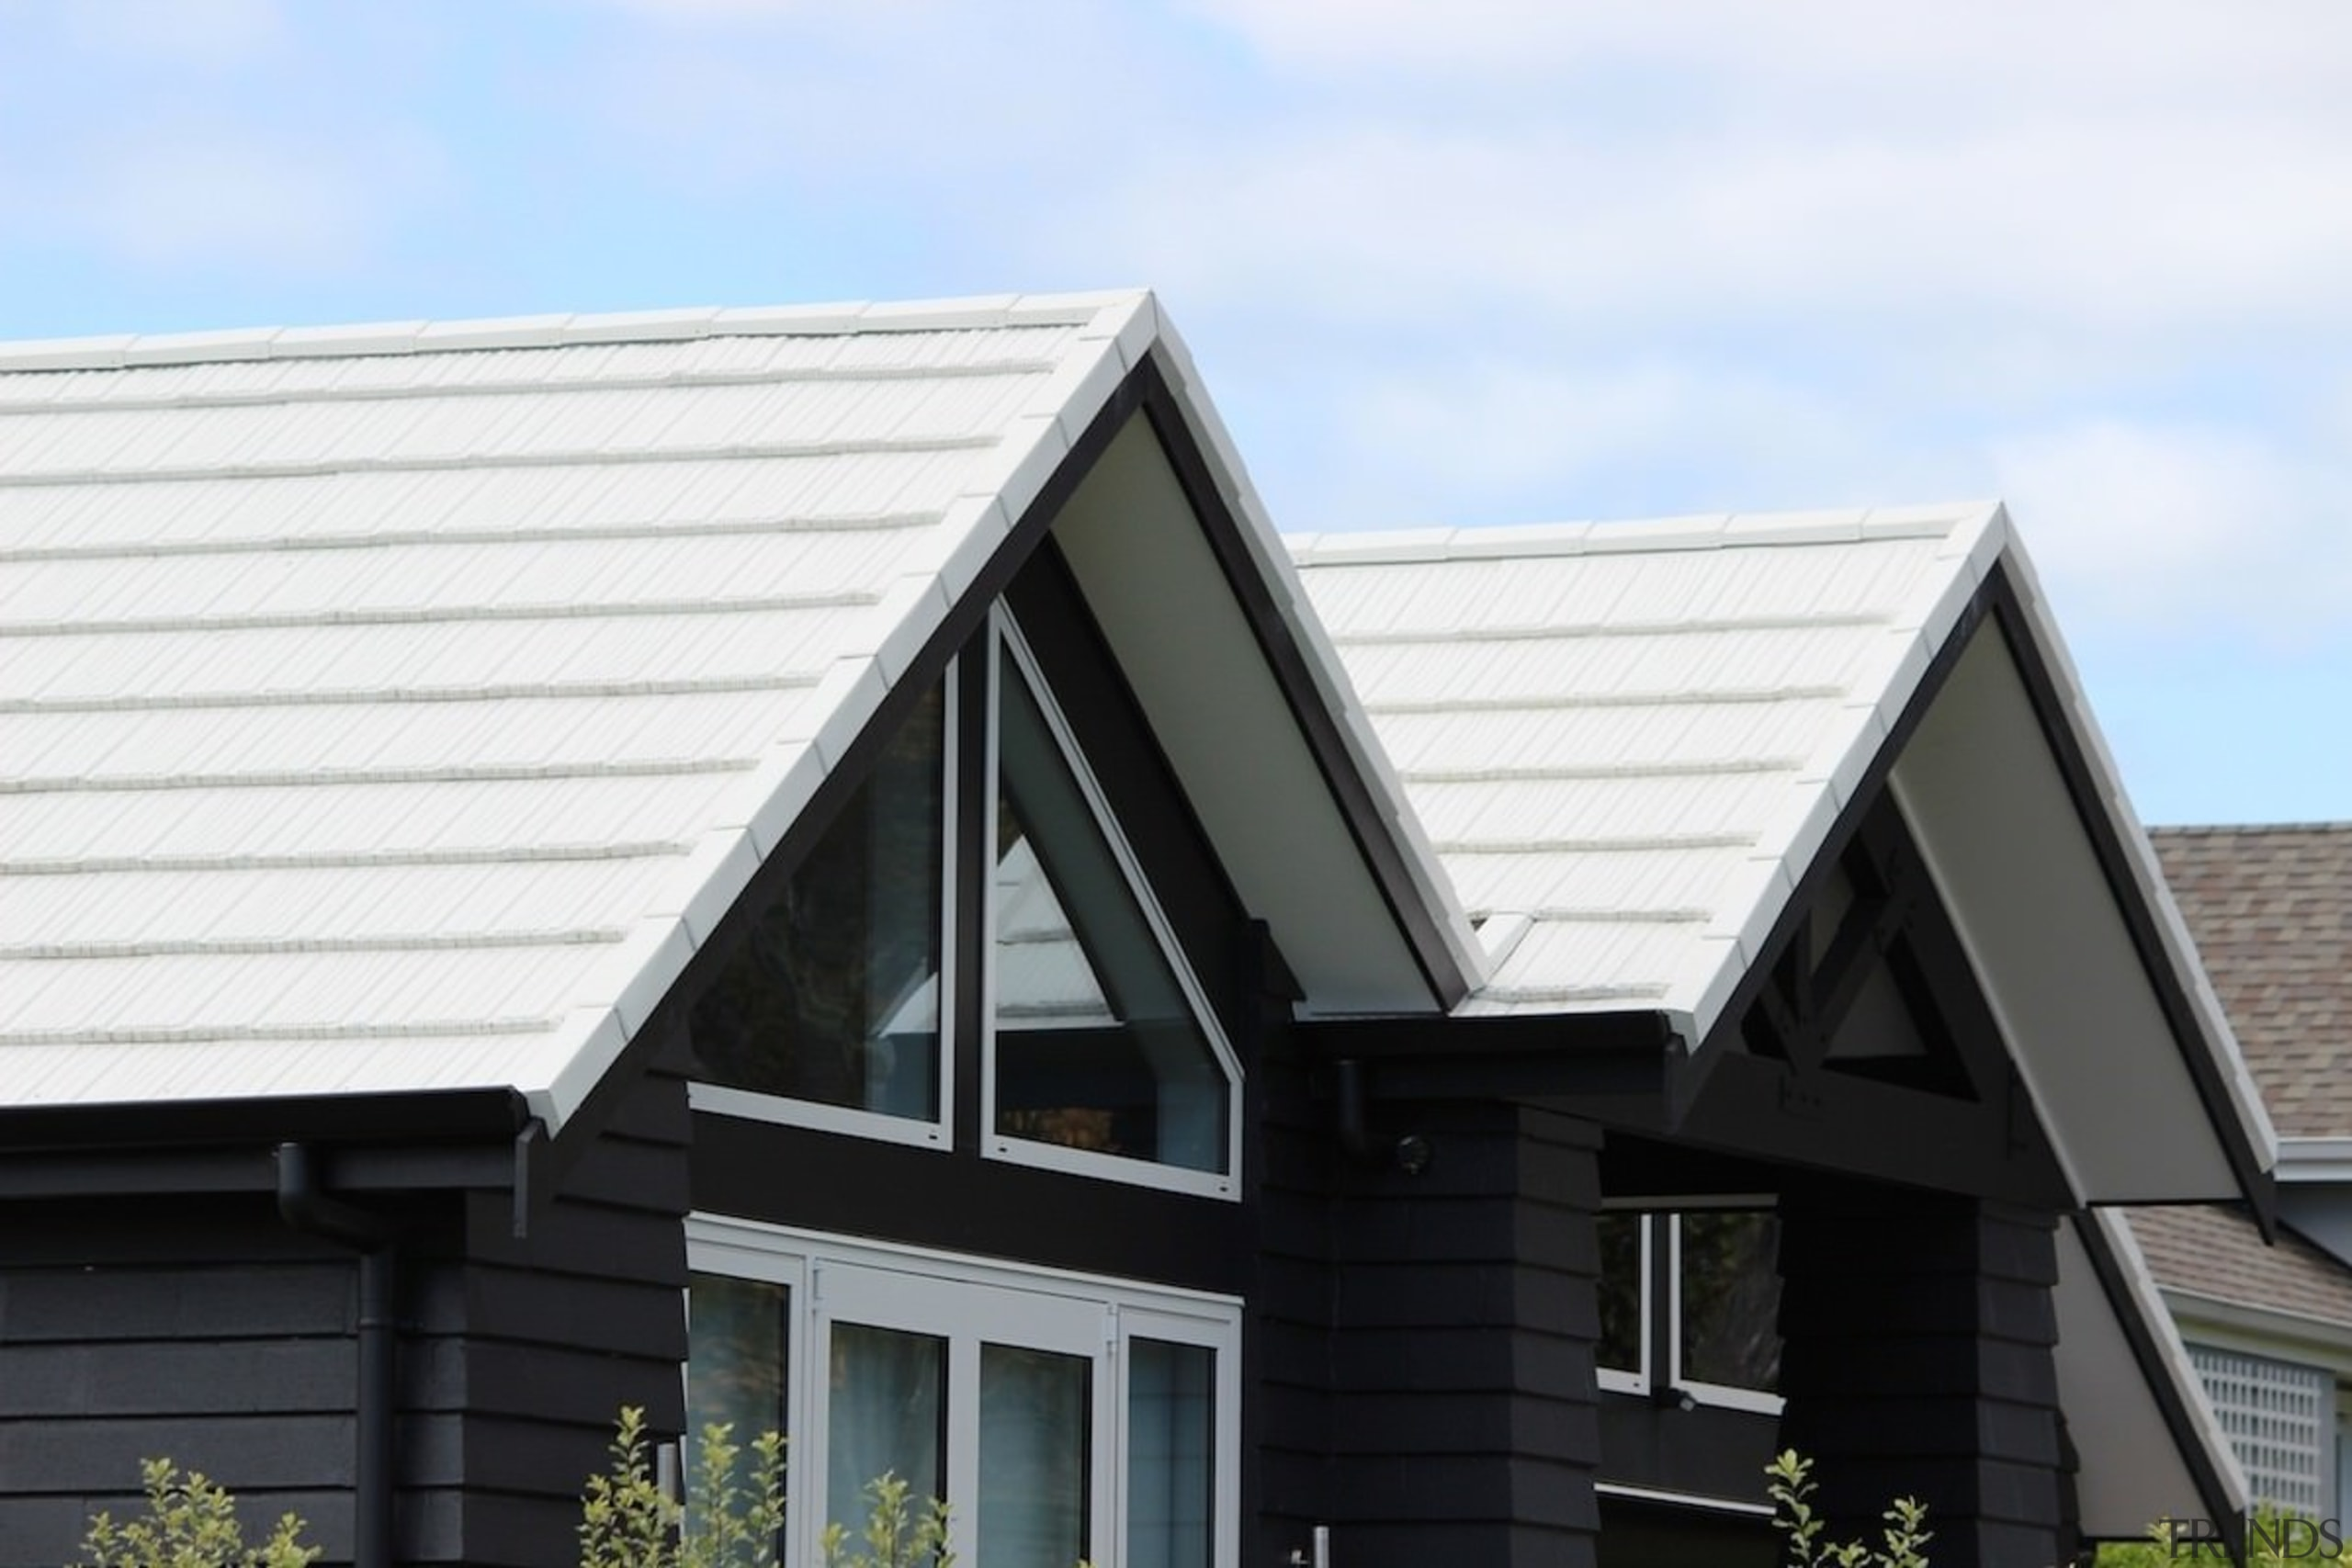 Metrotile metal panels - Metrotile metal panels - building, daylighting, elevation, facade, home, house, property, real estate, residential area, roof, siding, window, white, black